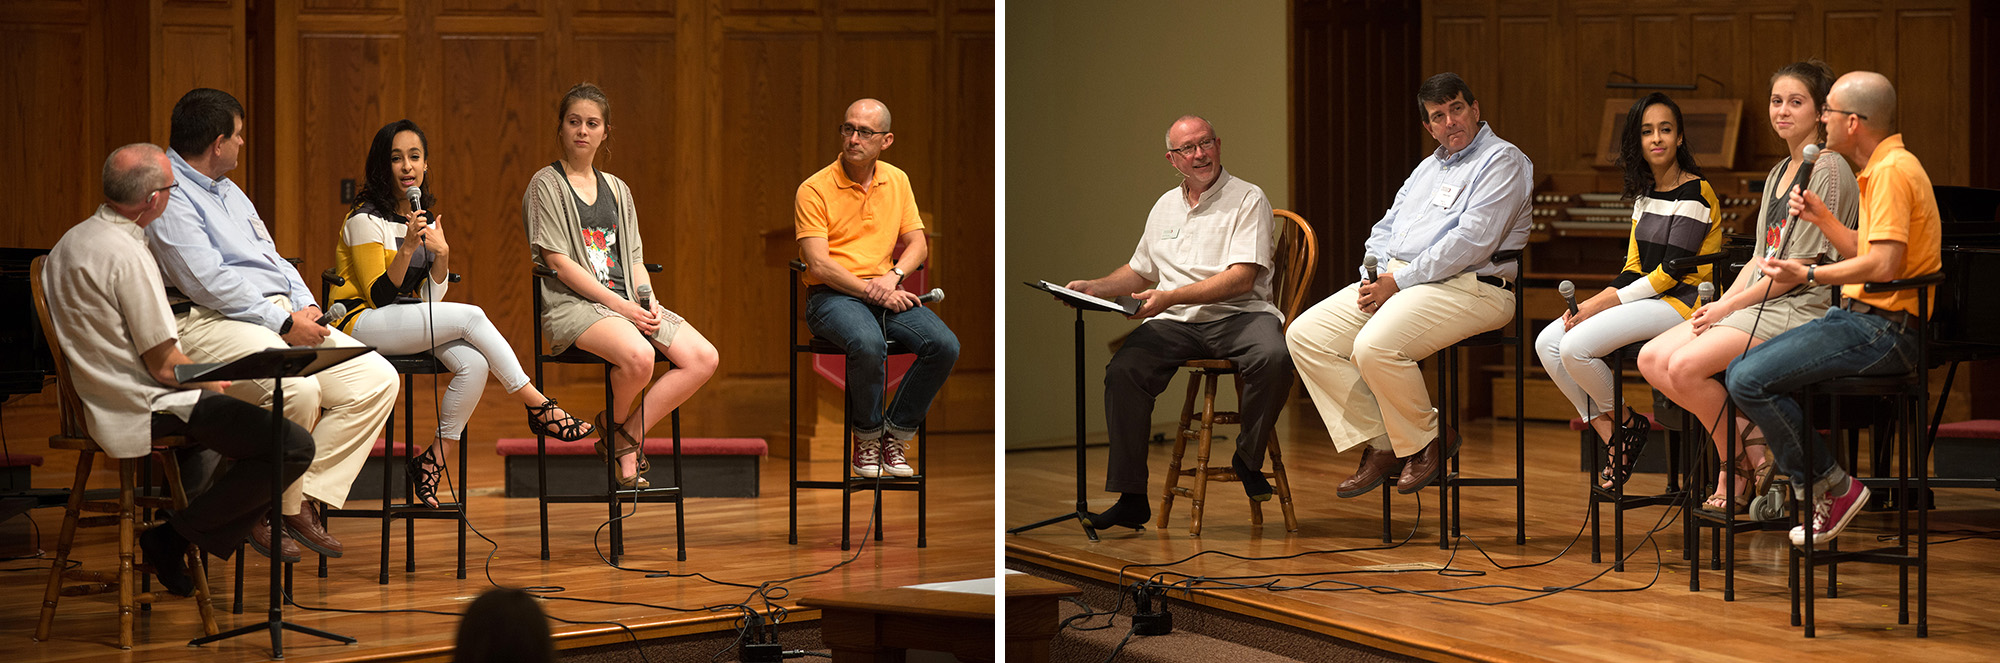 A panel of HC alumni and friends shares how their lives have been enriched by friendships that span religions.